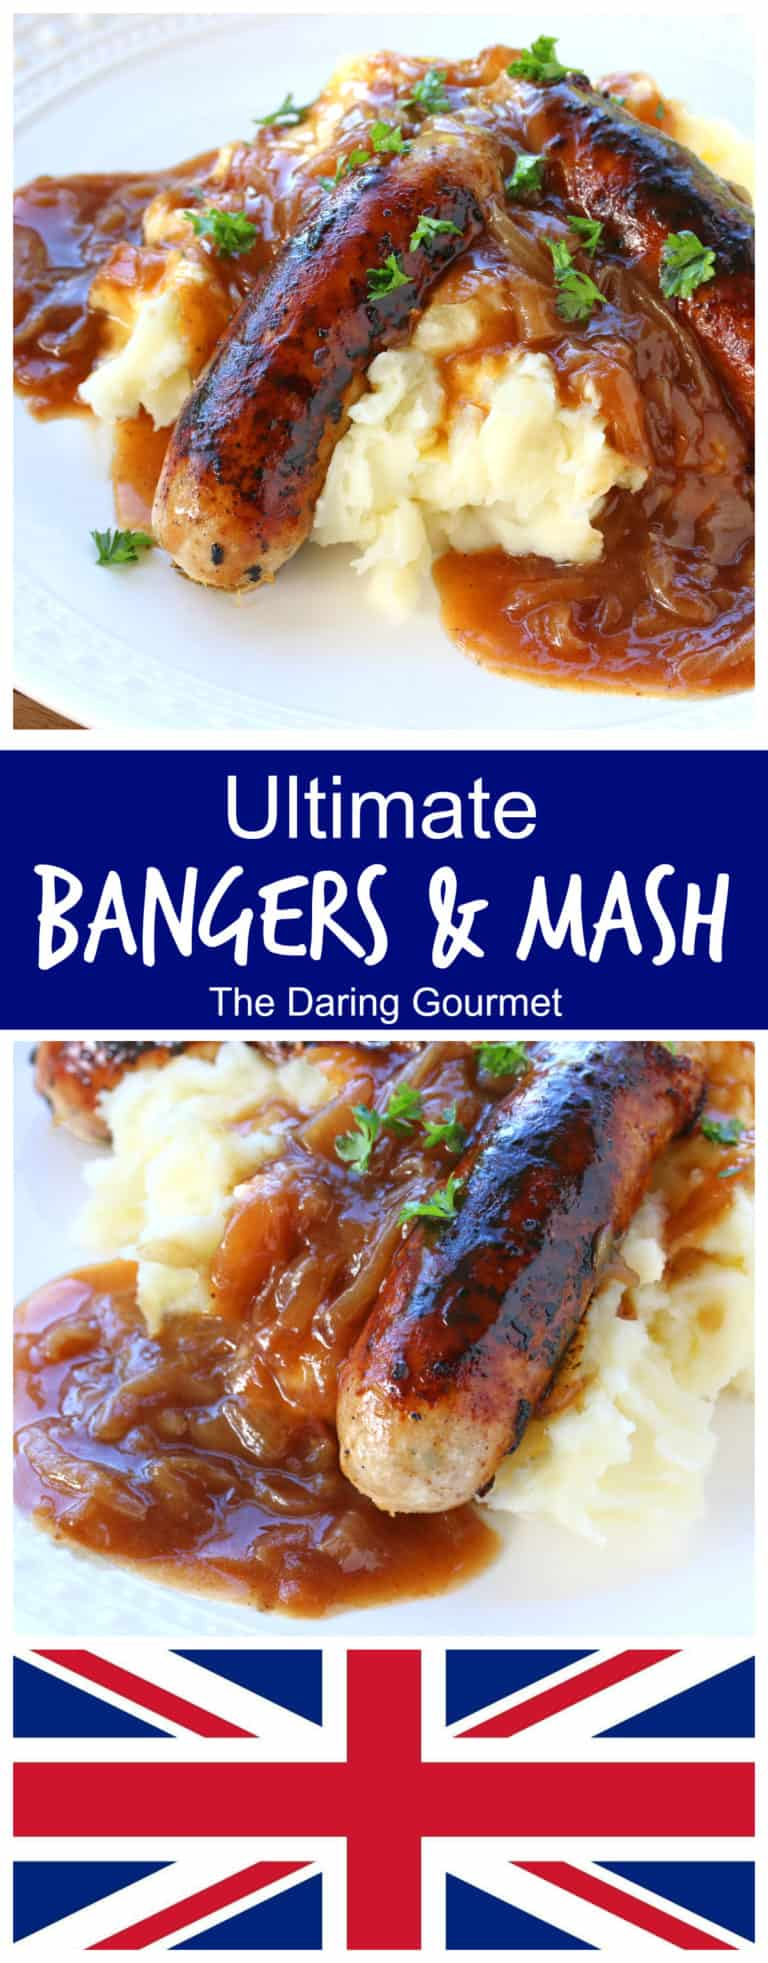 bangers and mash recipe best how to make homemade sausages onion gravy authentic traditional